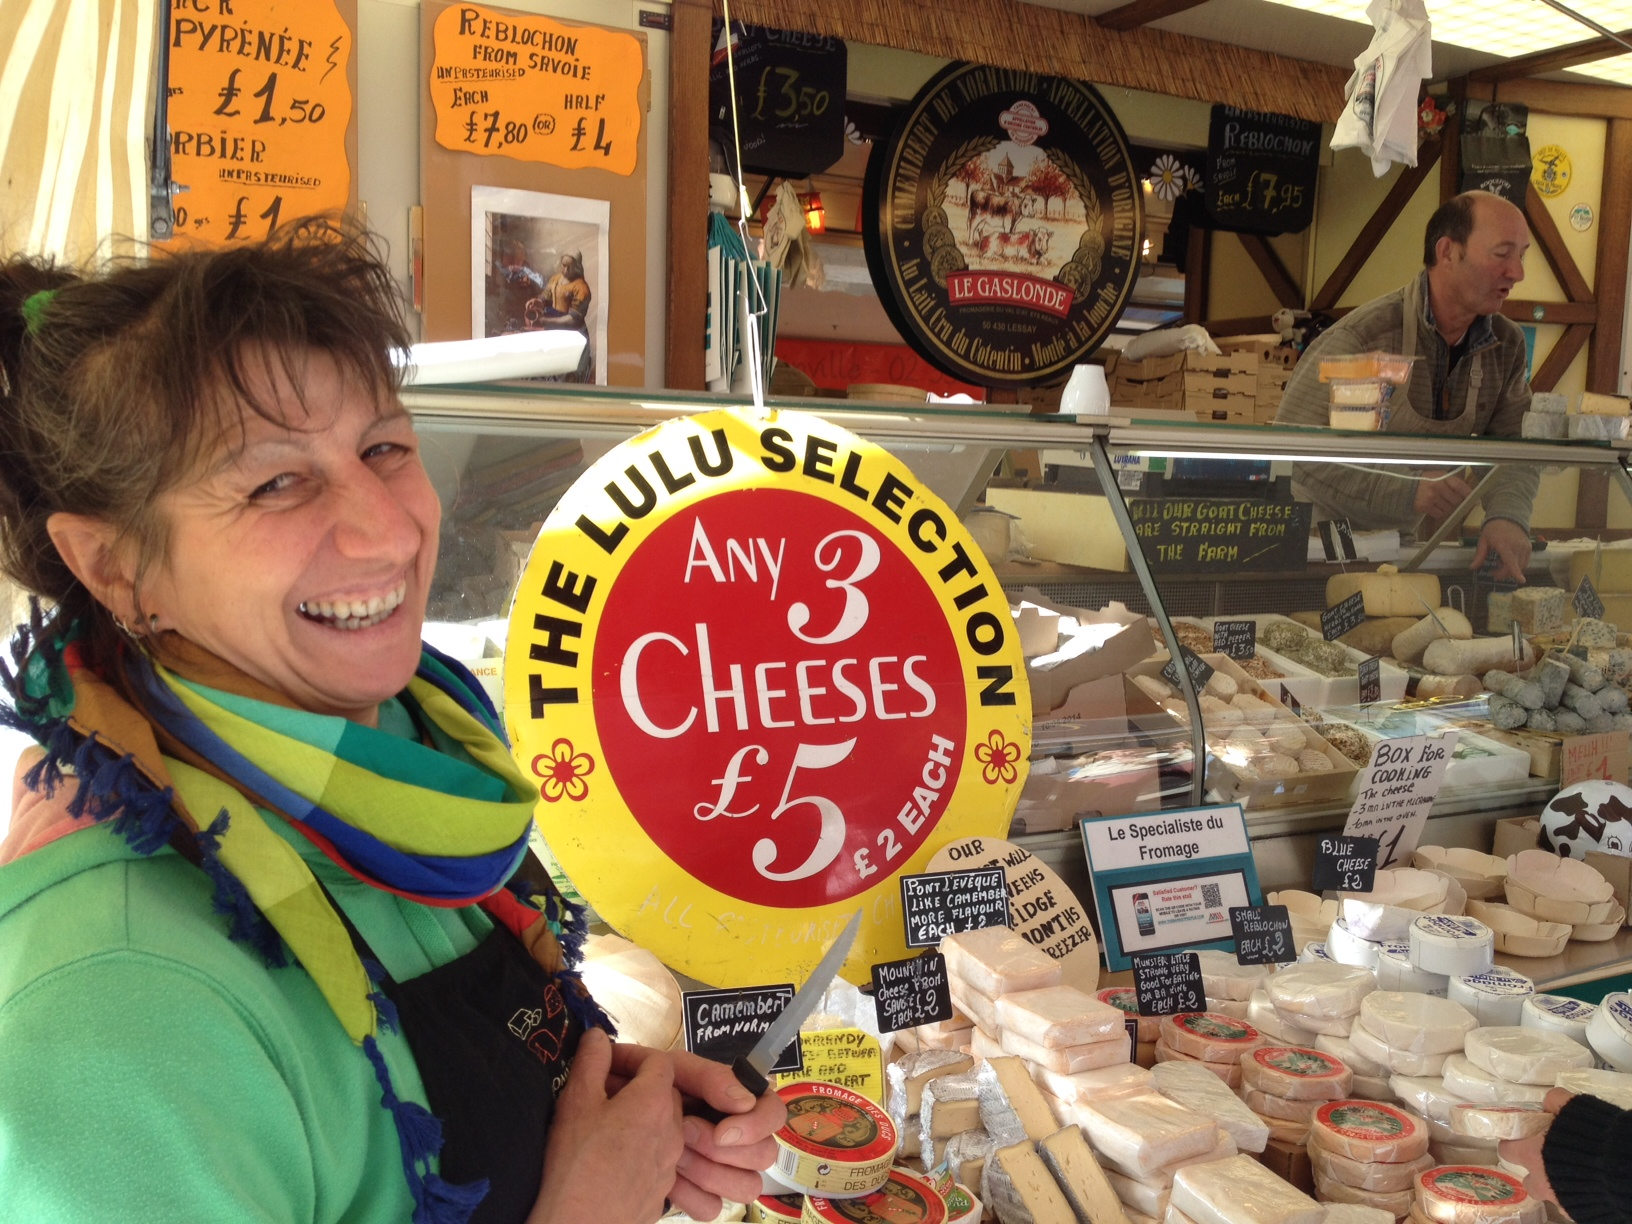 Petts Wood goes continental as market springs up